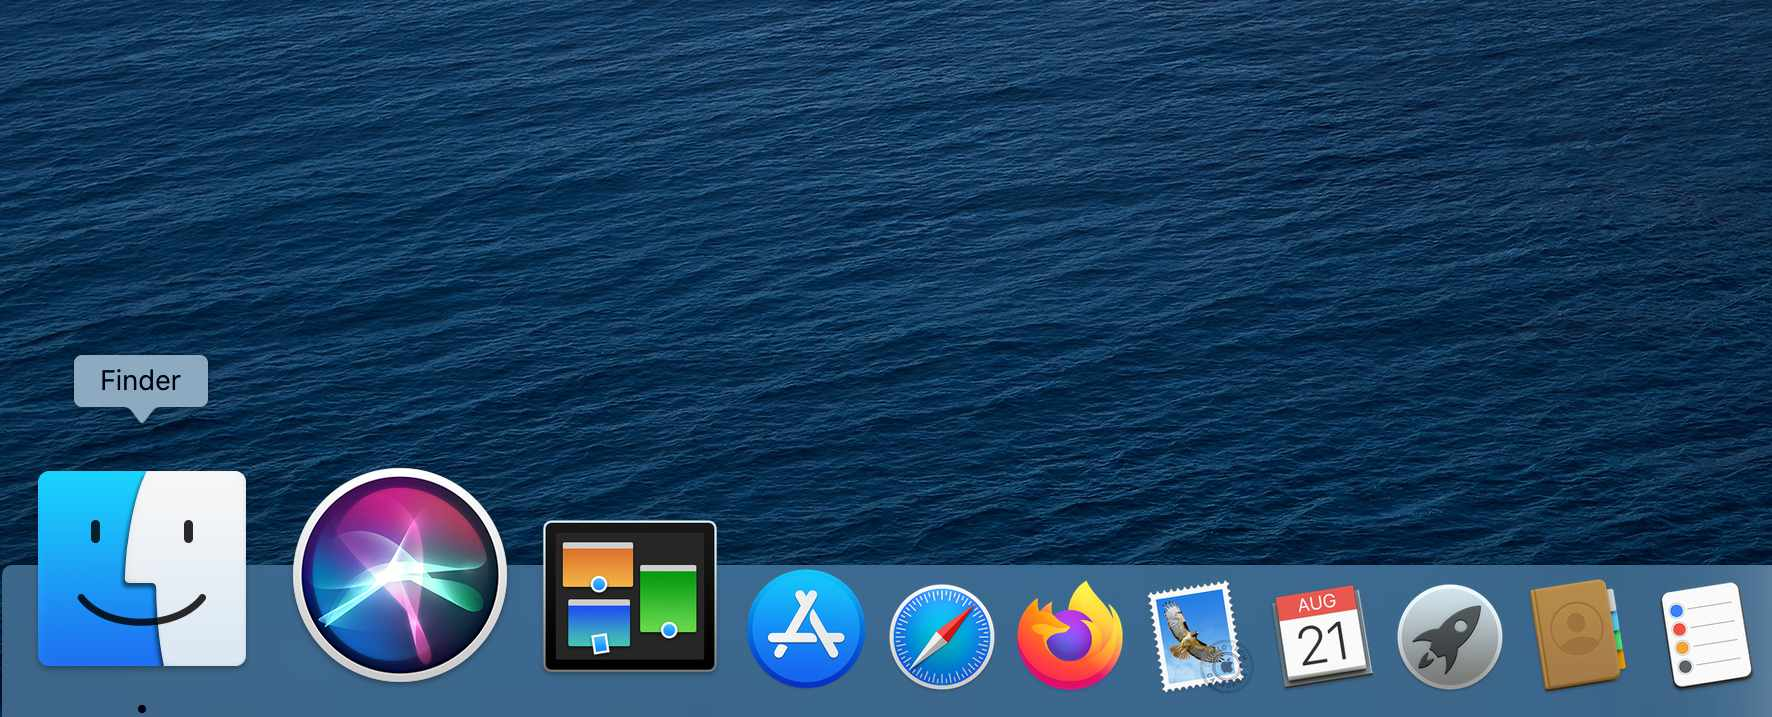 The Finder icon in the macOS Catalina Dock